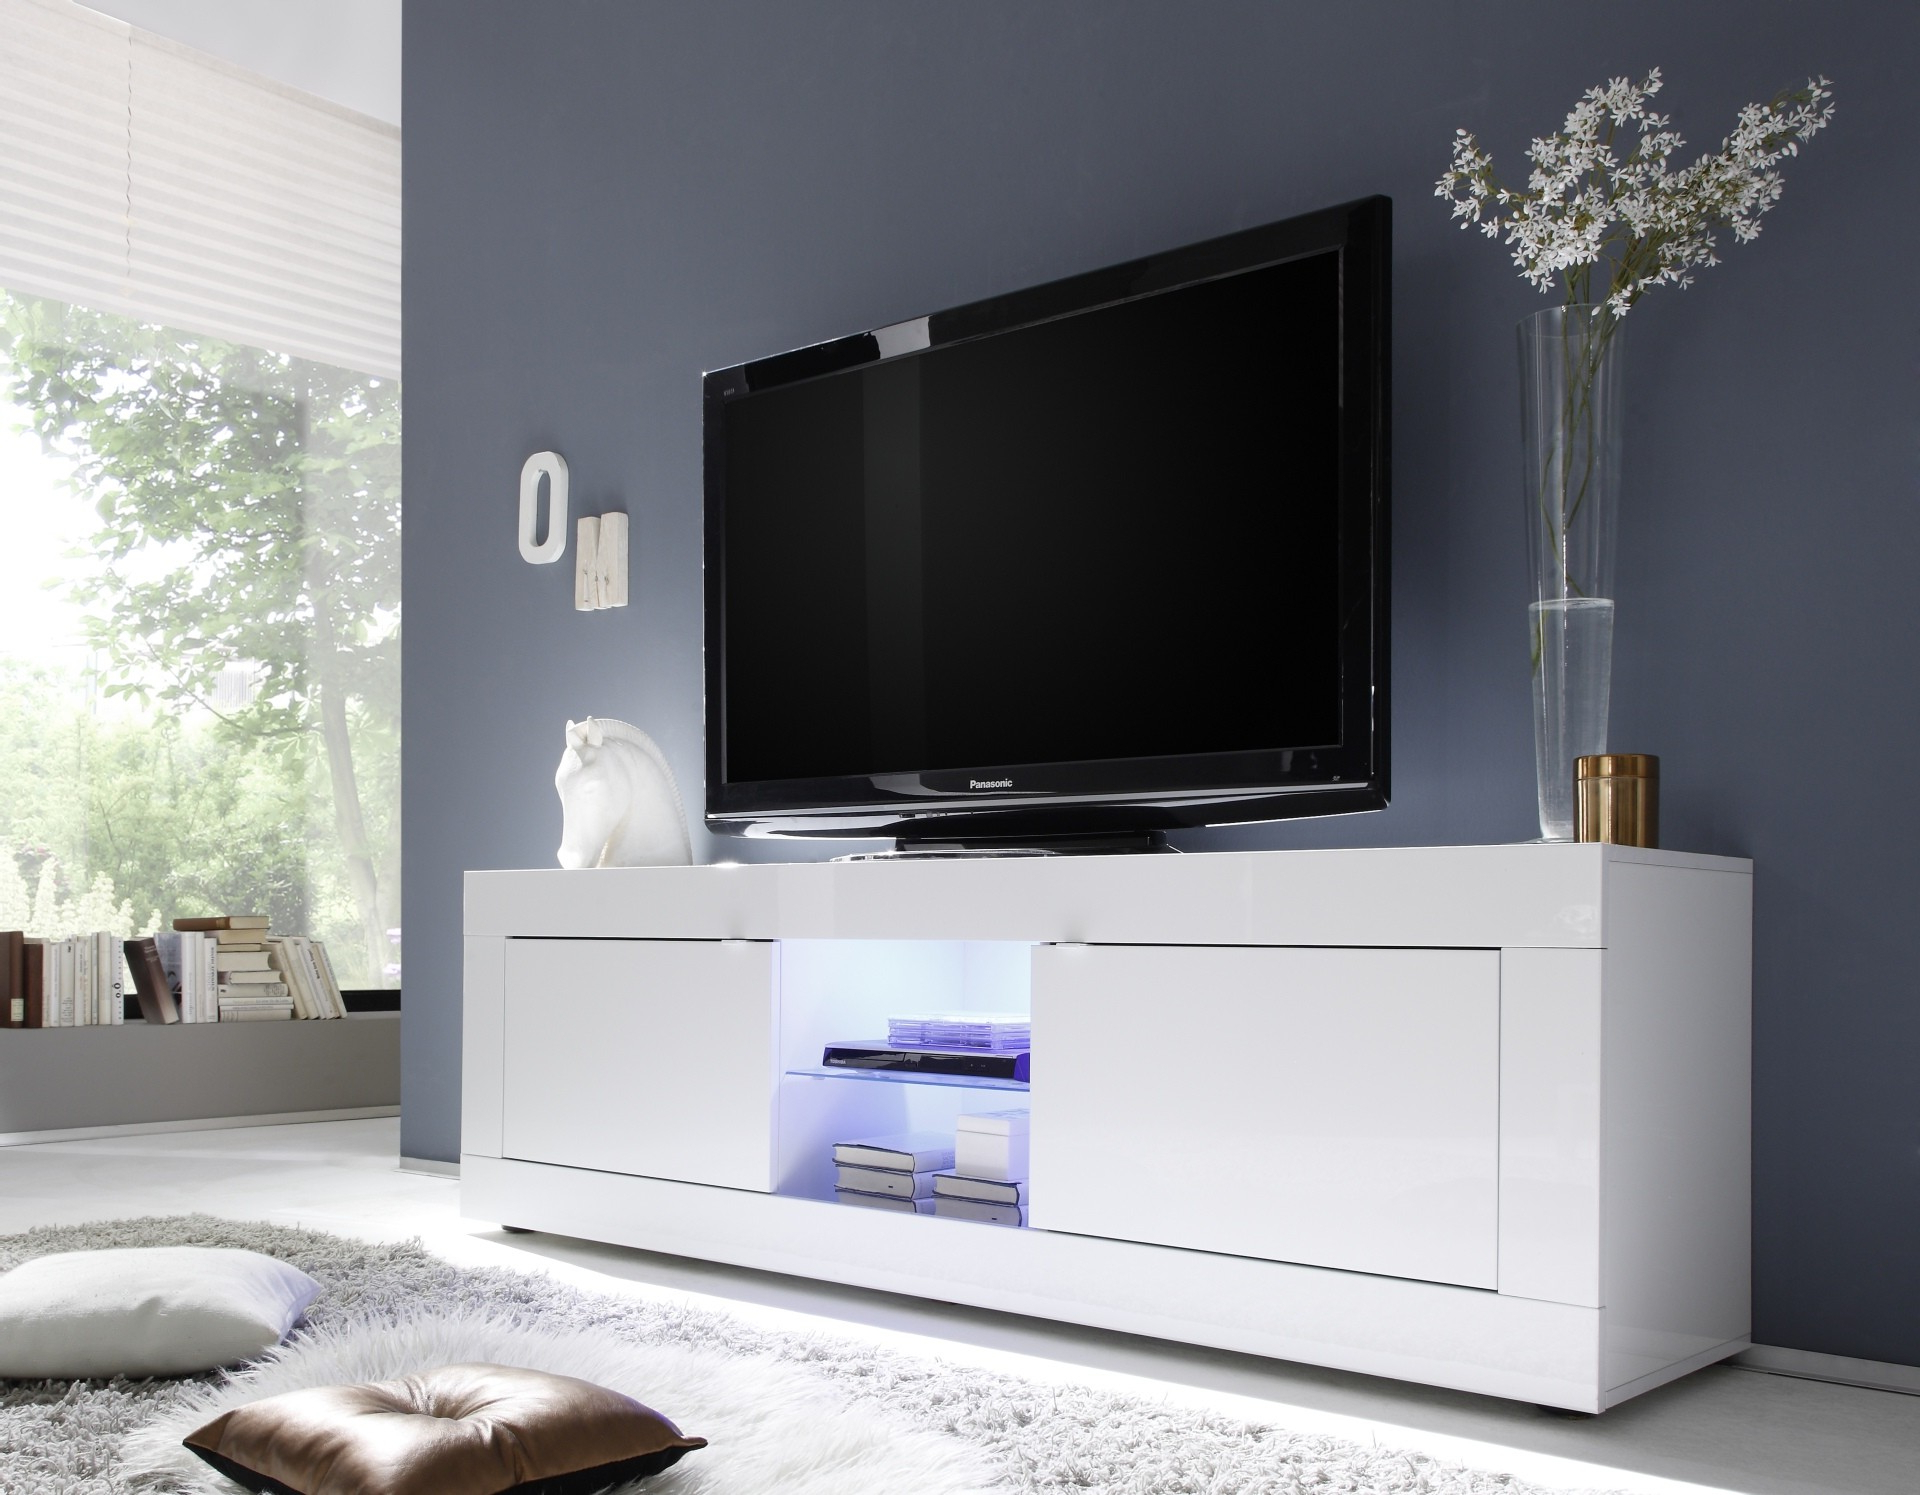 White High Gloss Tv Units Modern Entertainment Center Ikea Home Pertaining To Well Liked White High Gloss Tv Stands (Gallery 16 of 20)